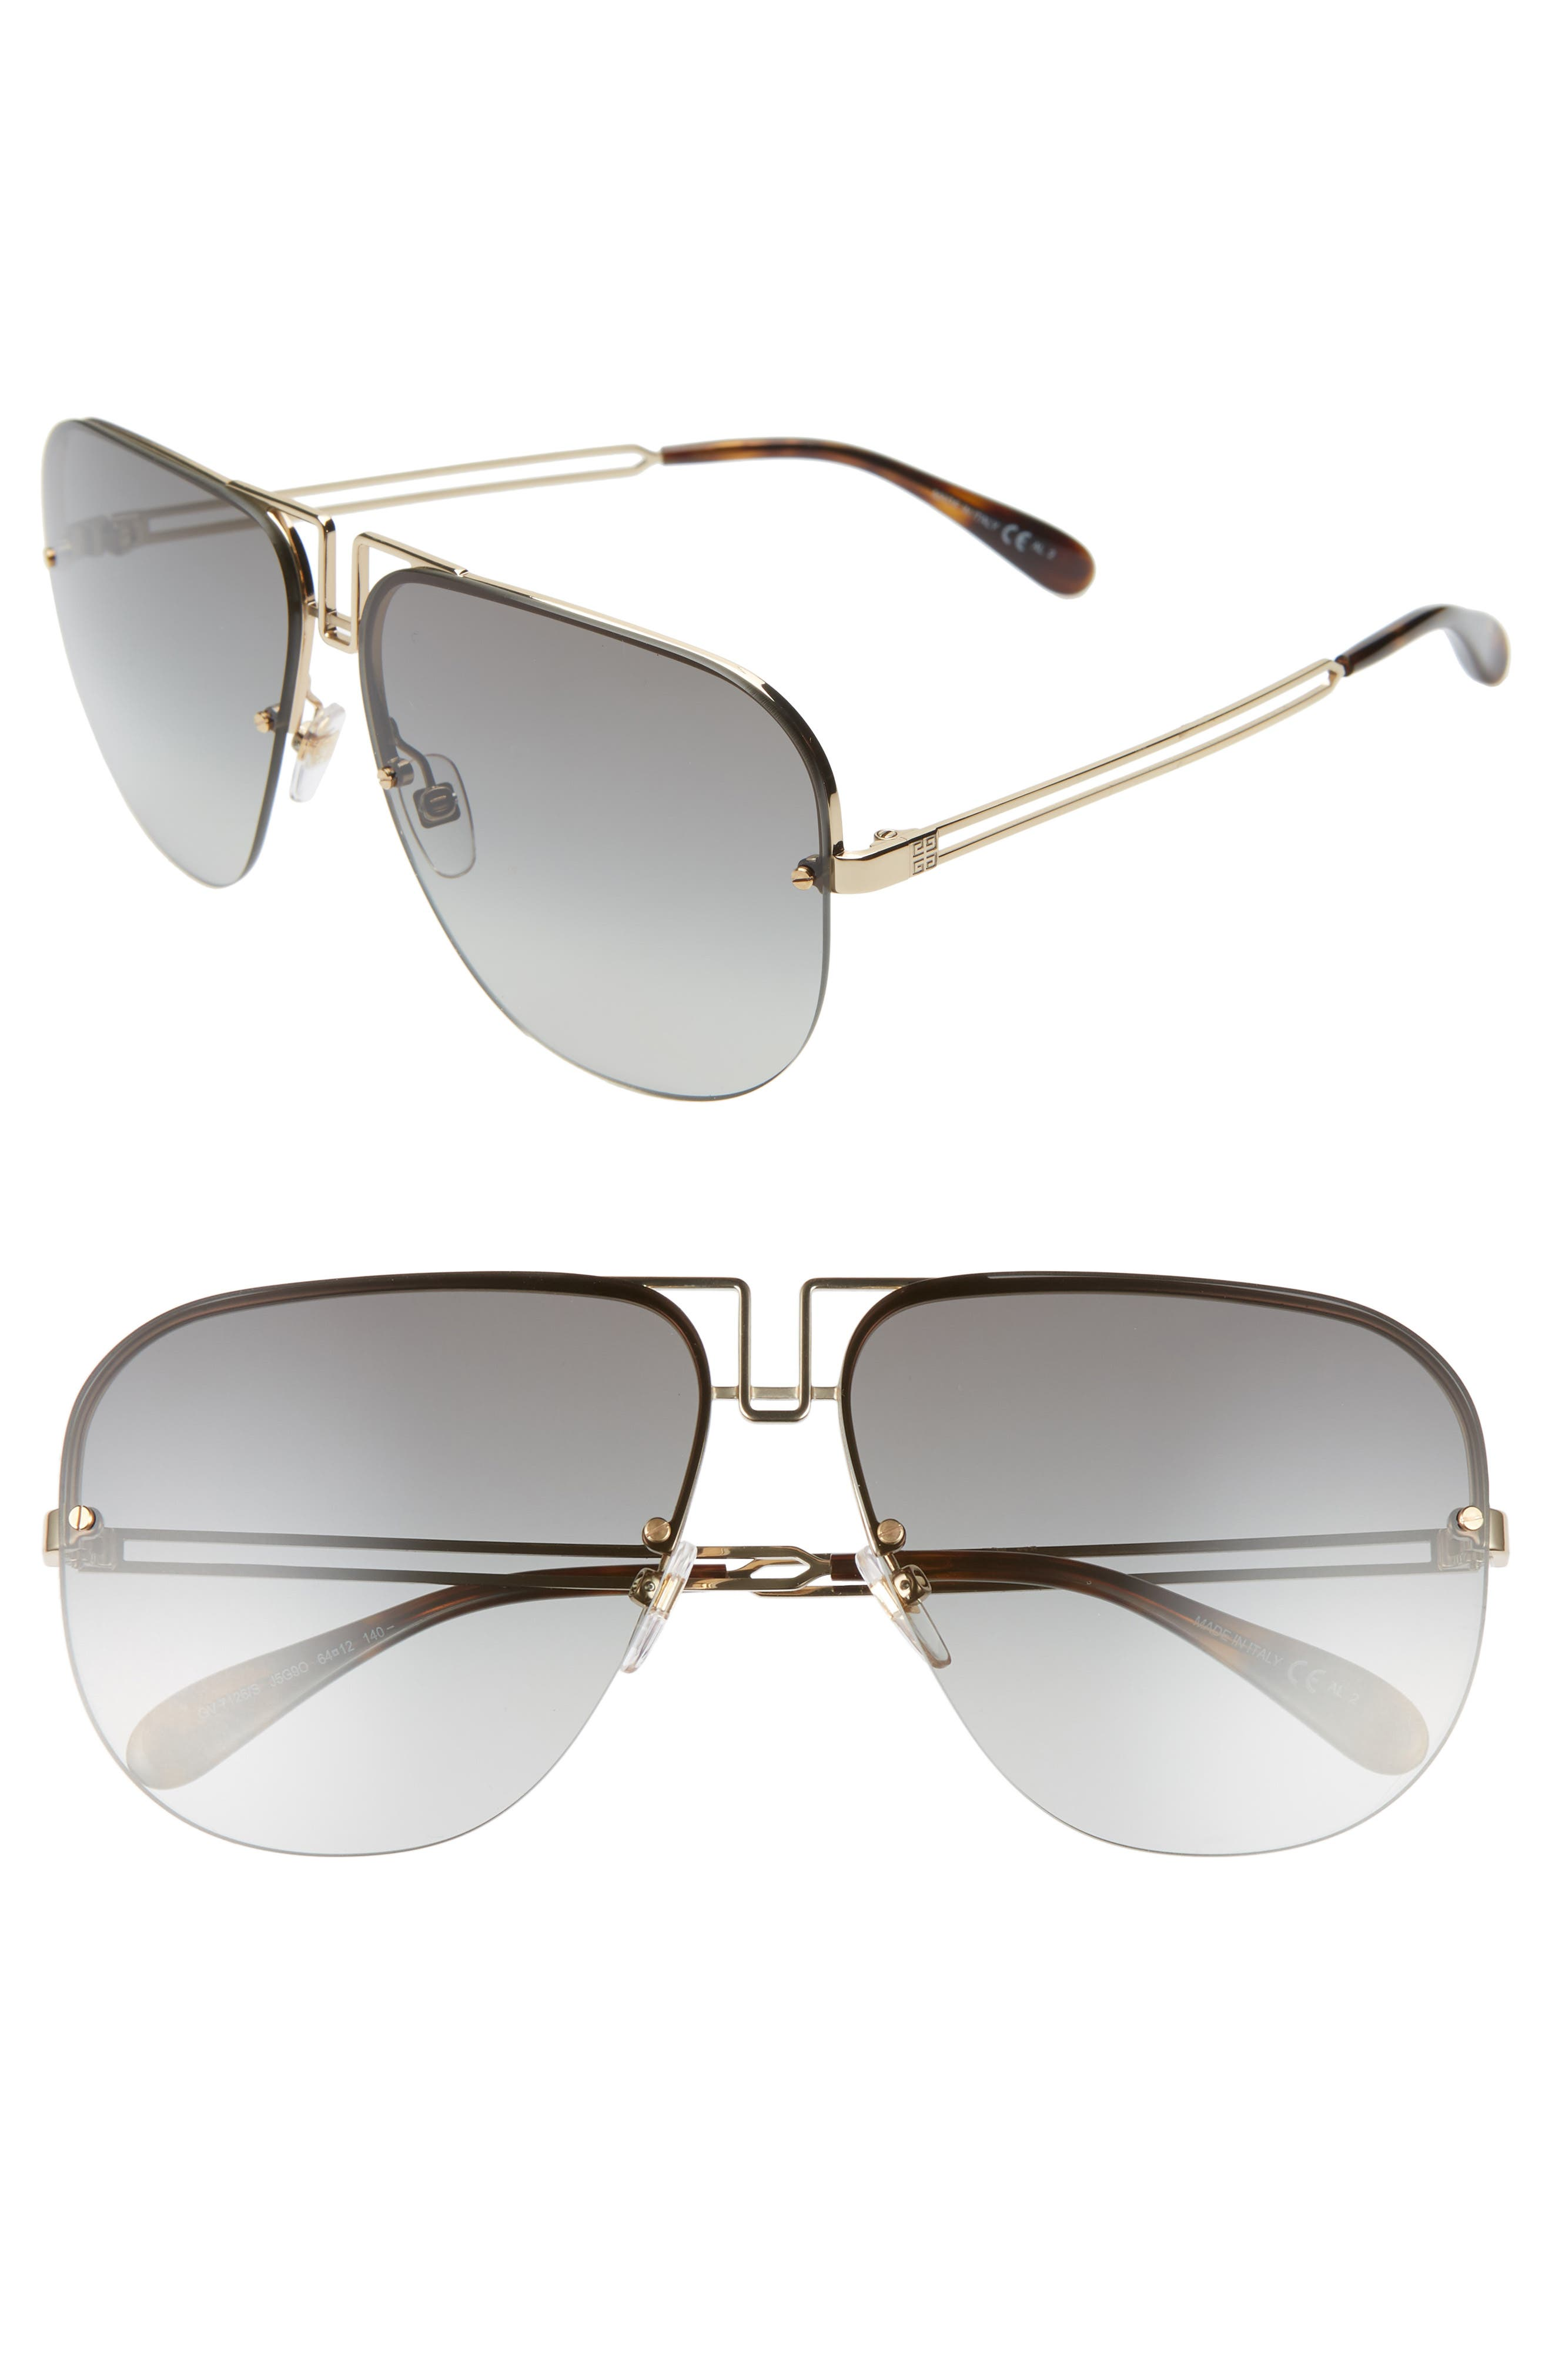 262b3f7157 Givenchy Oversize Aviator Sunglasses - Gold  Grey